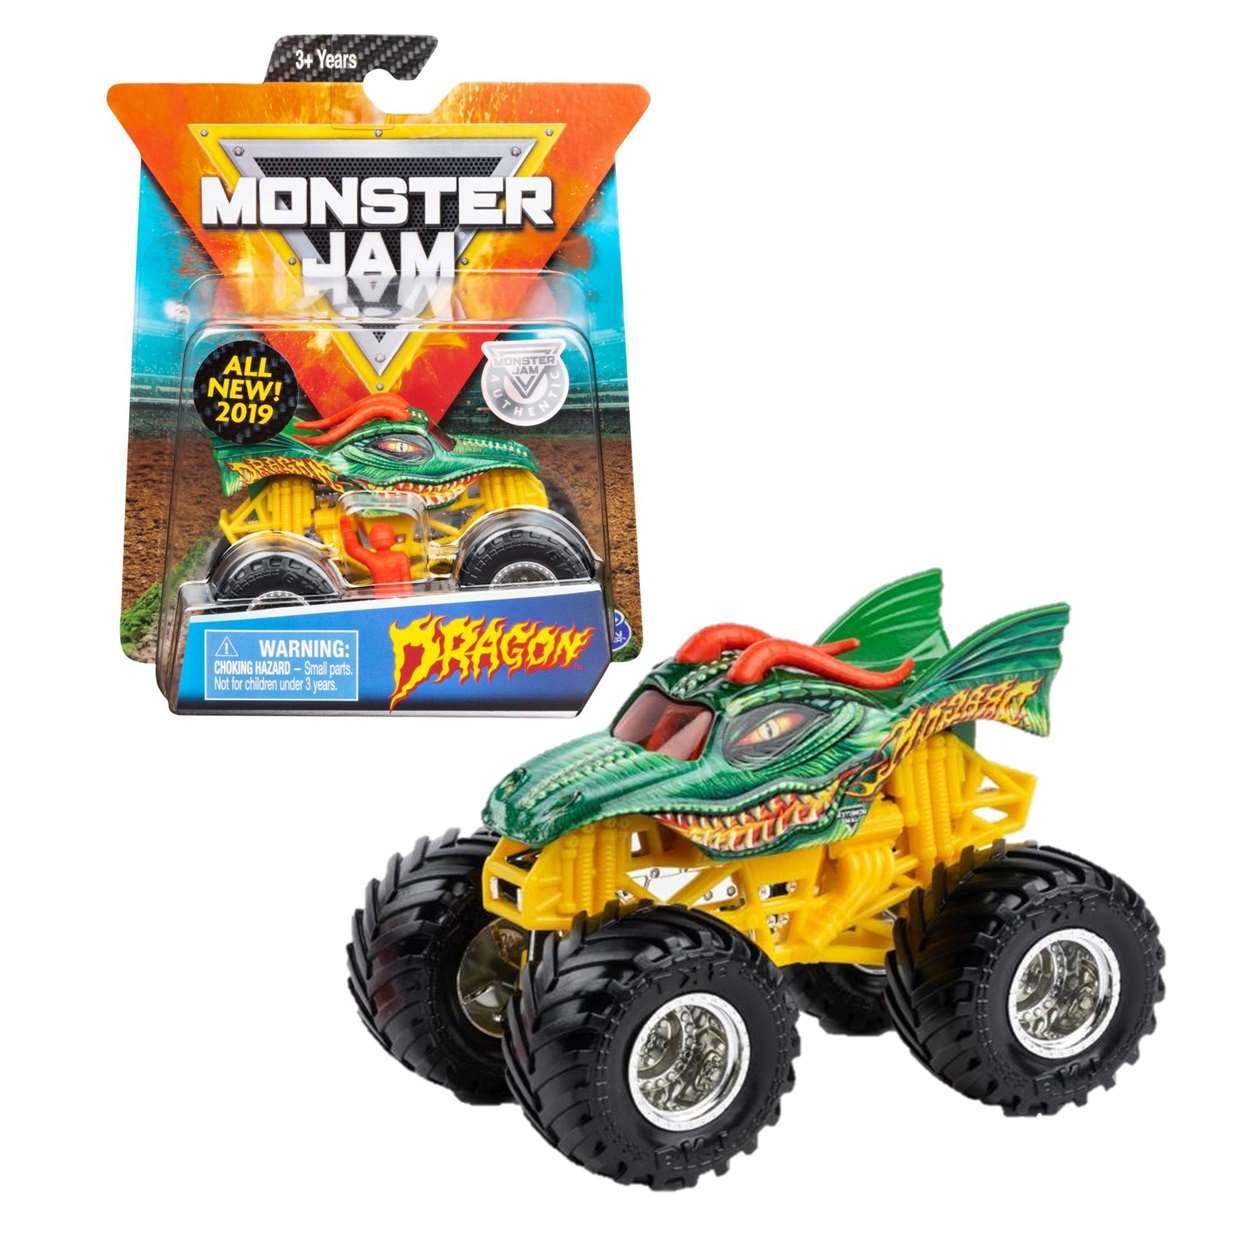 Dragon All New 2019 1/64 Monster Jam Authentic Spin Master